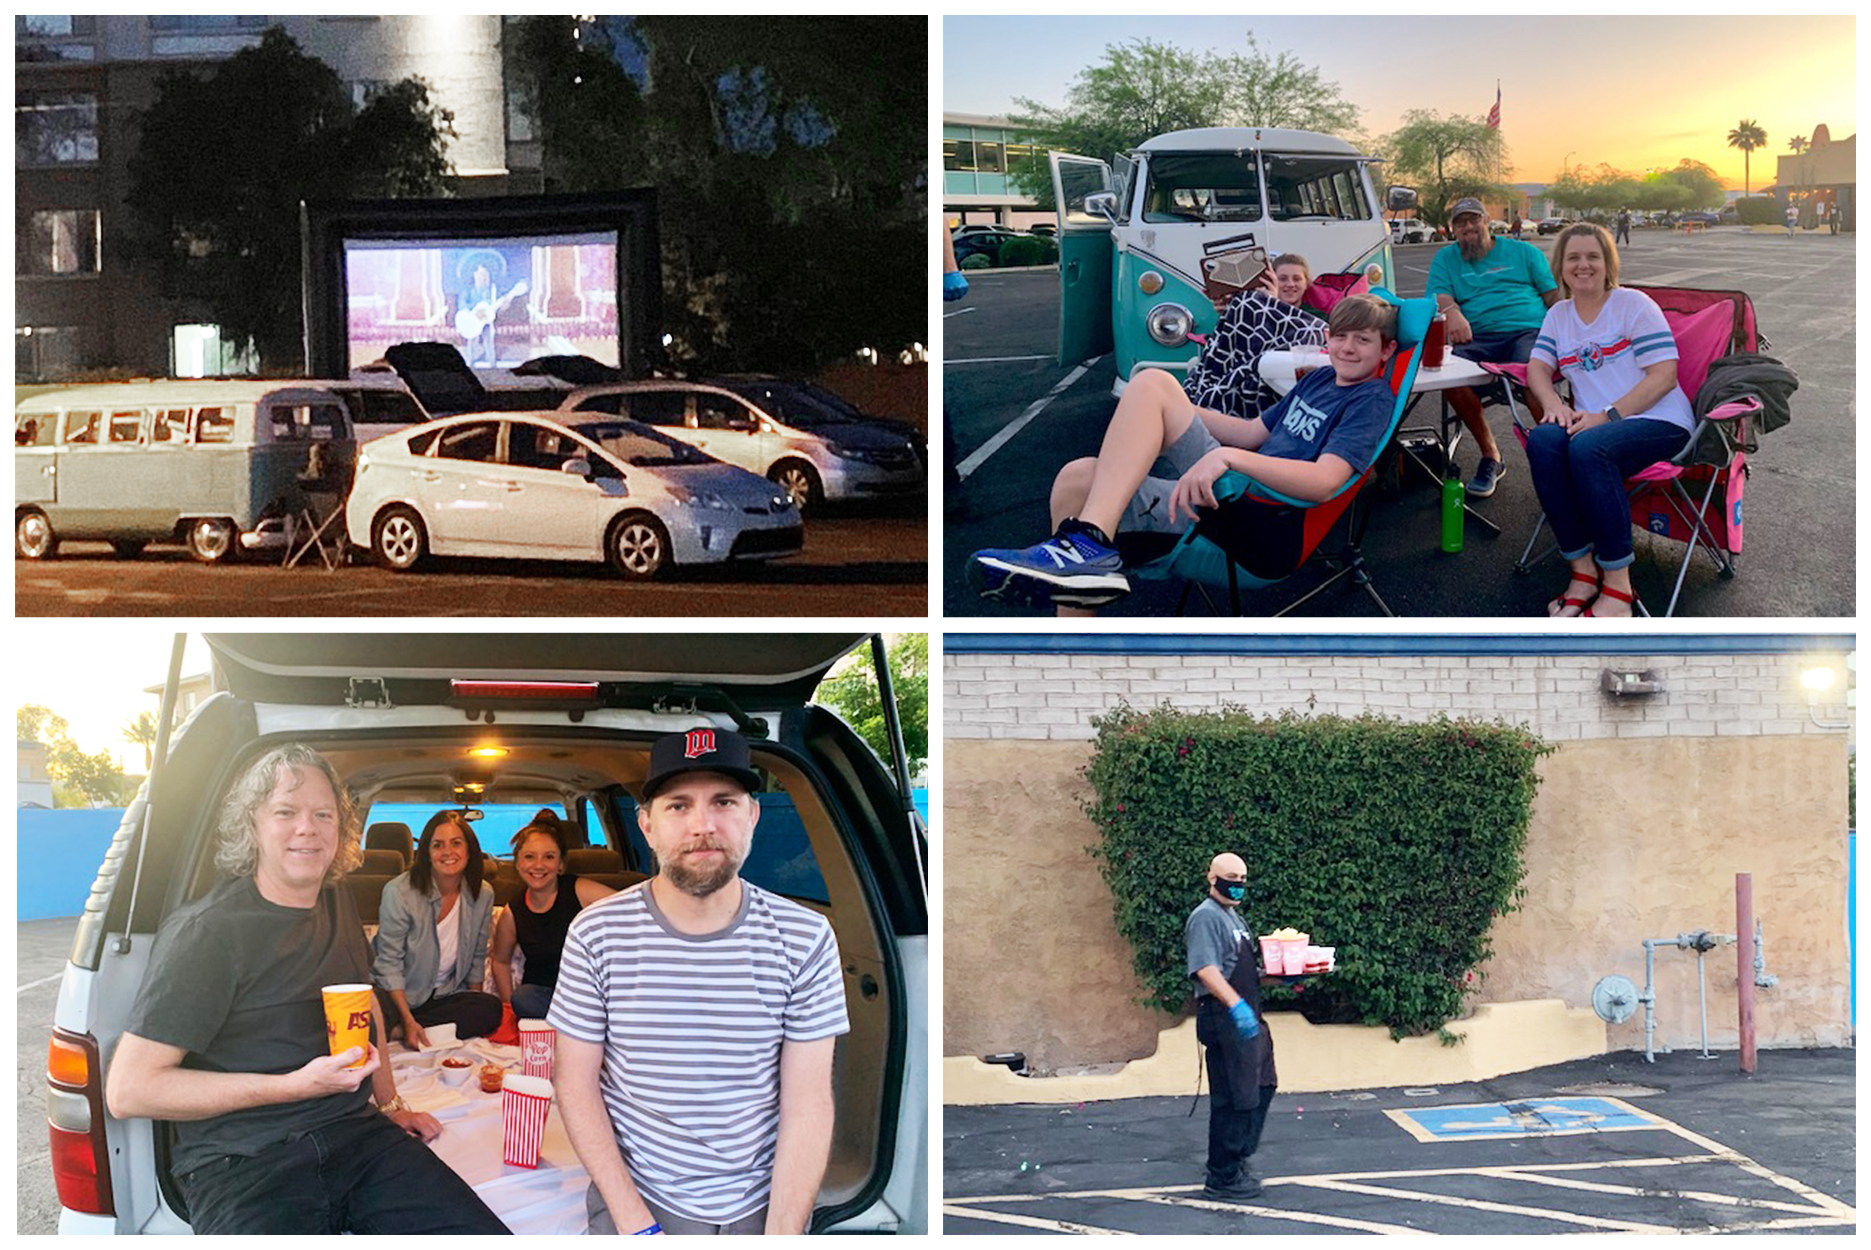 Restaurants Converting to Drive-In Theaters